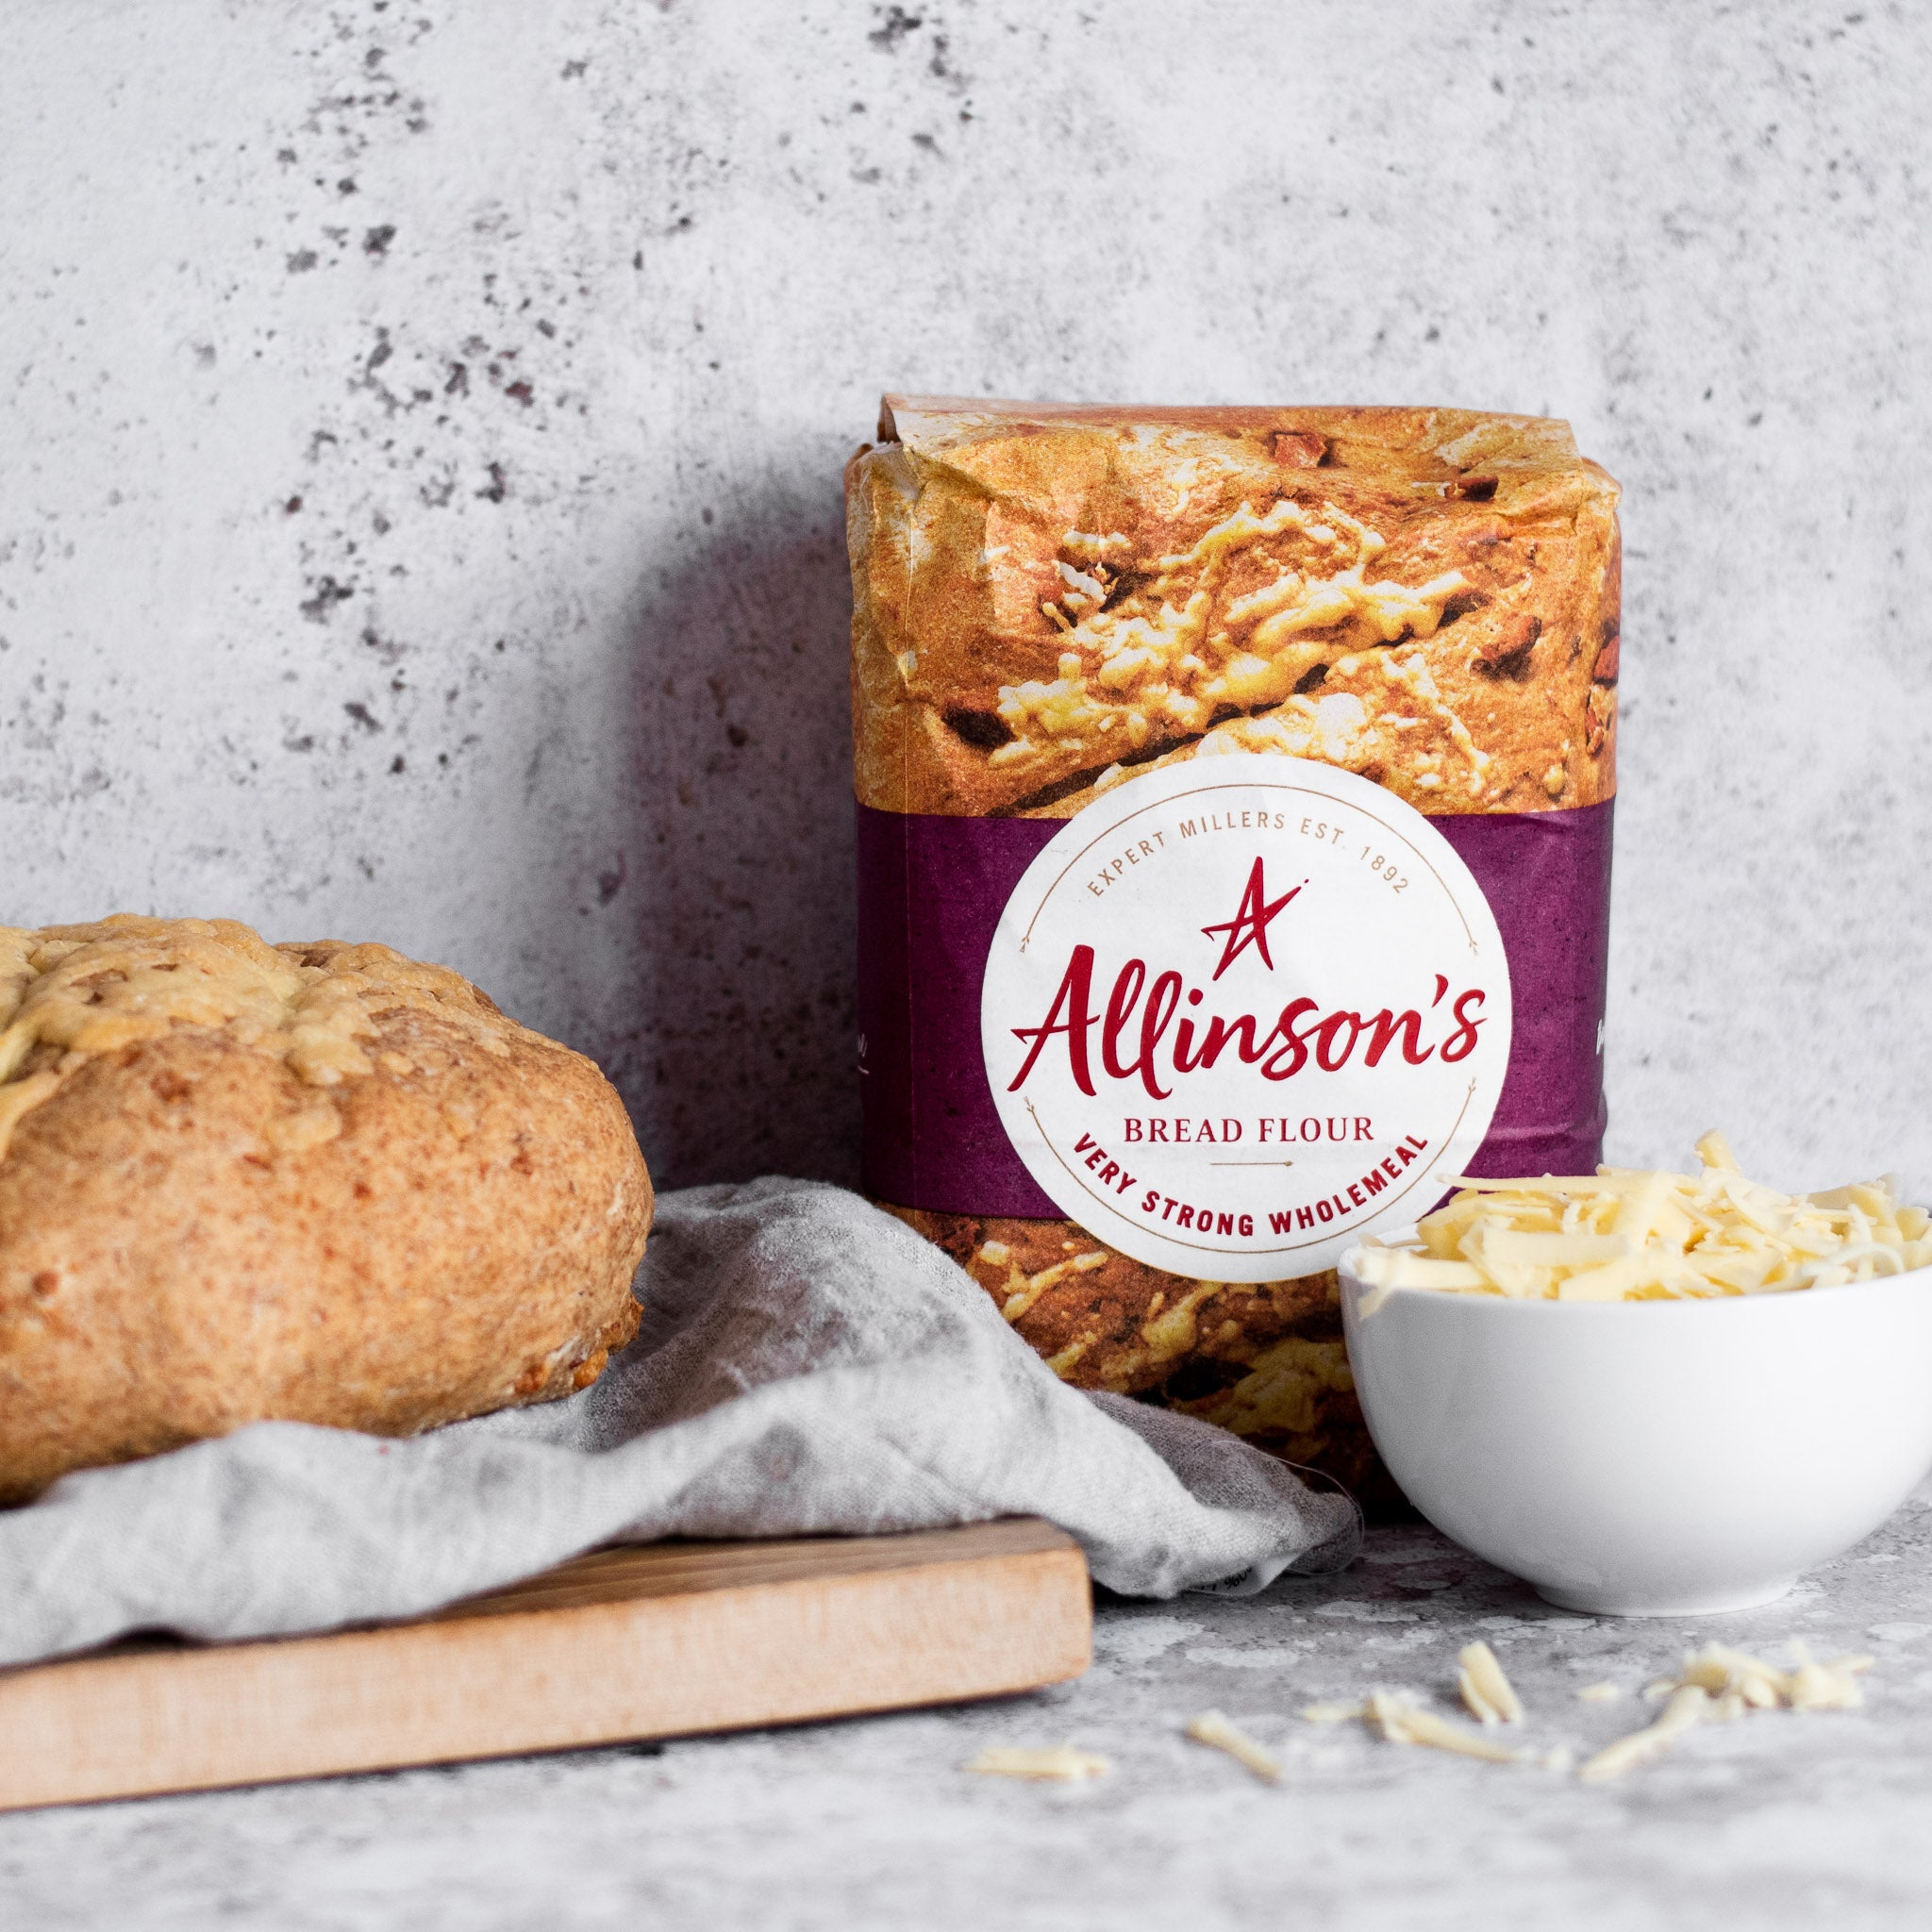 Allinson-s-Bacon-Cheese-Flat-Loaf-11-Baking-Mad-6-(2).jpg